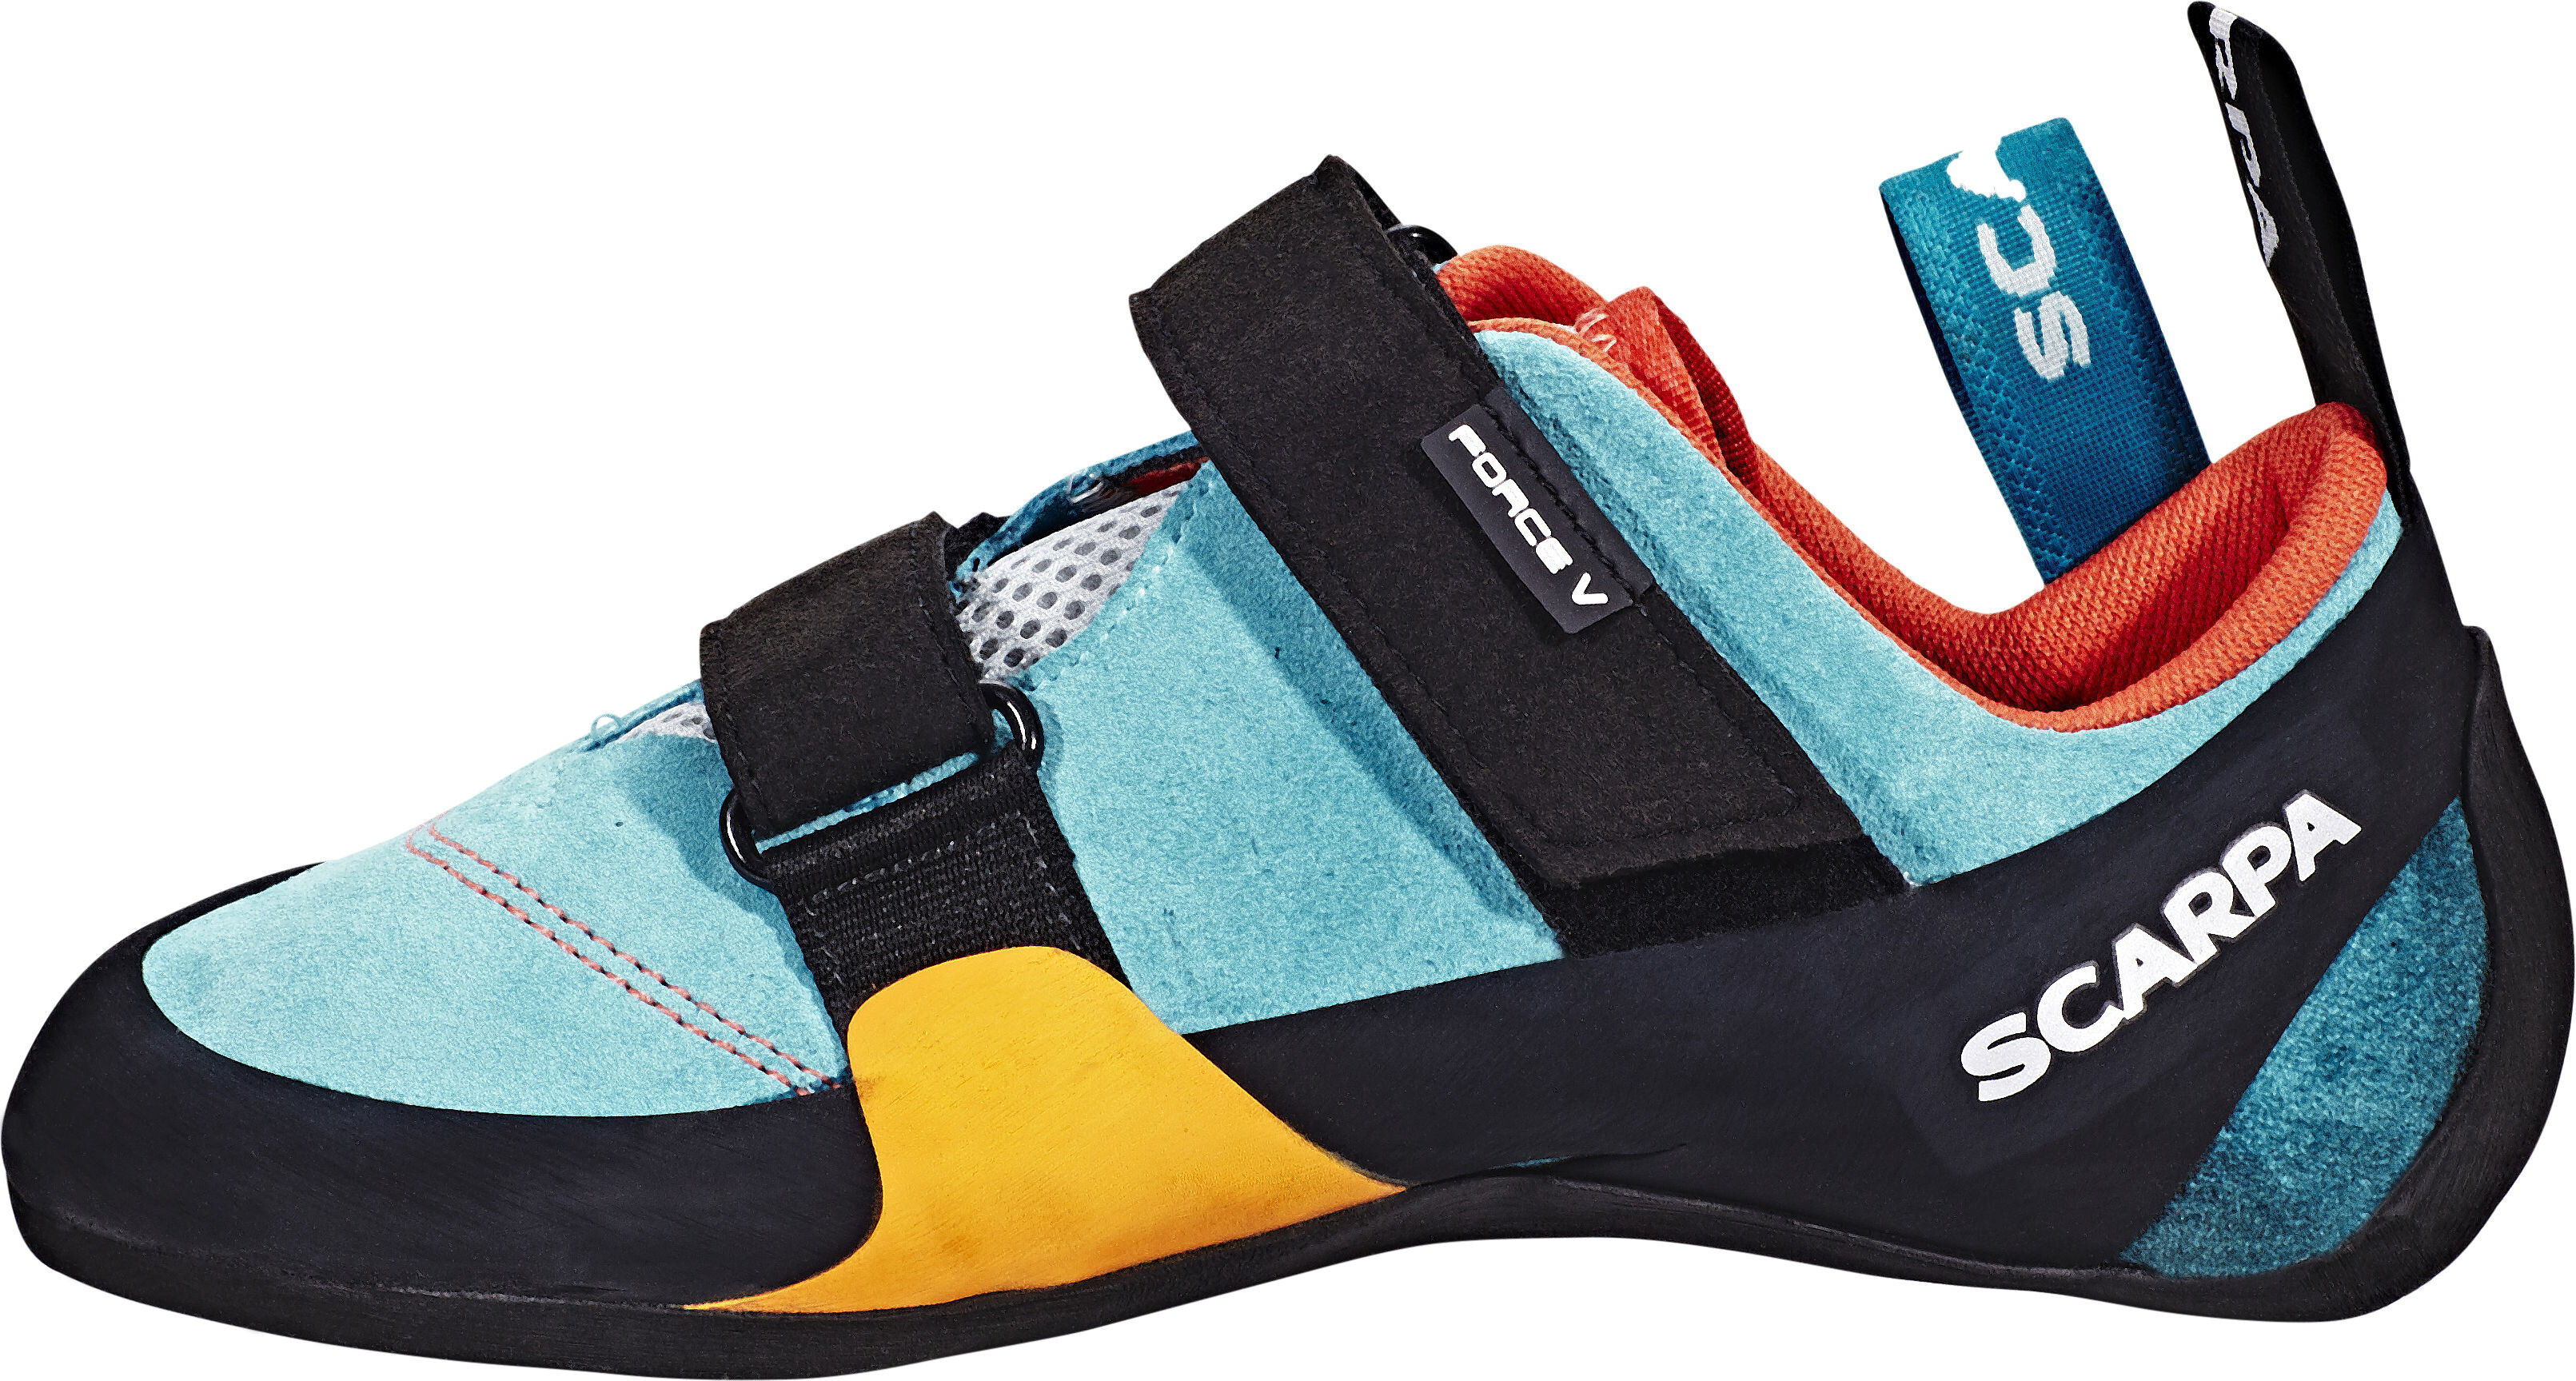 Scarpa Force V Climbing Shoes Review